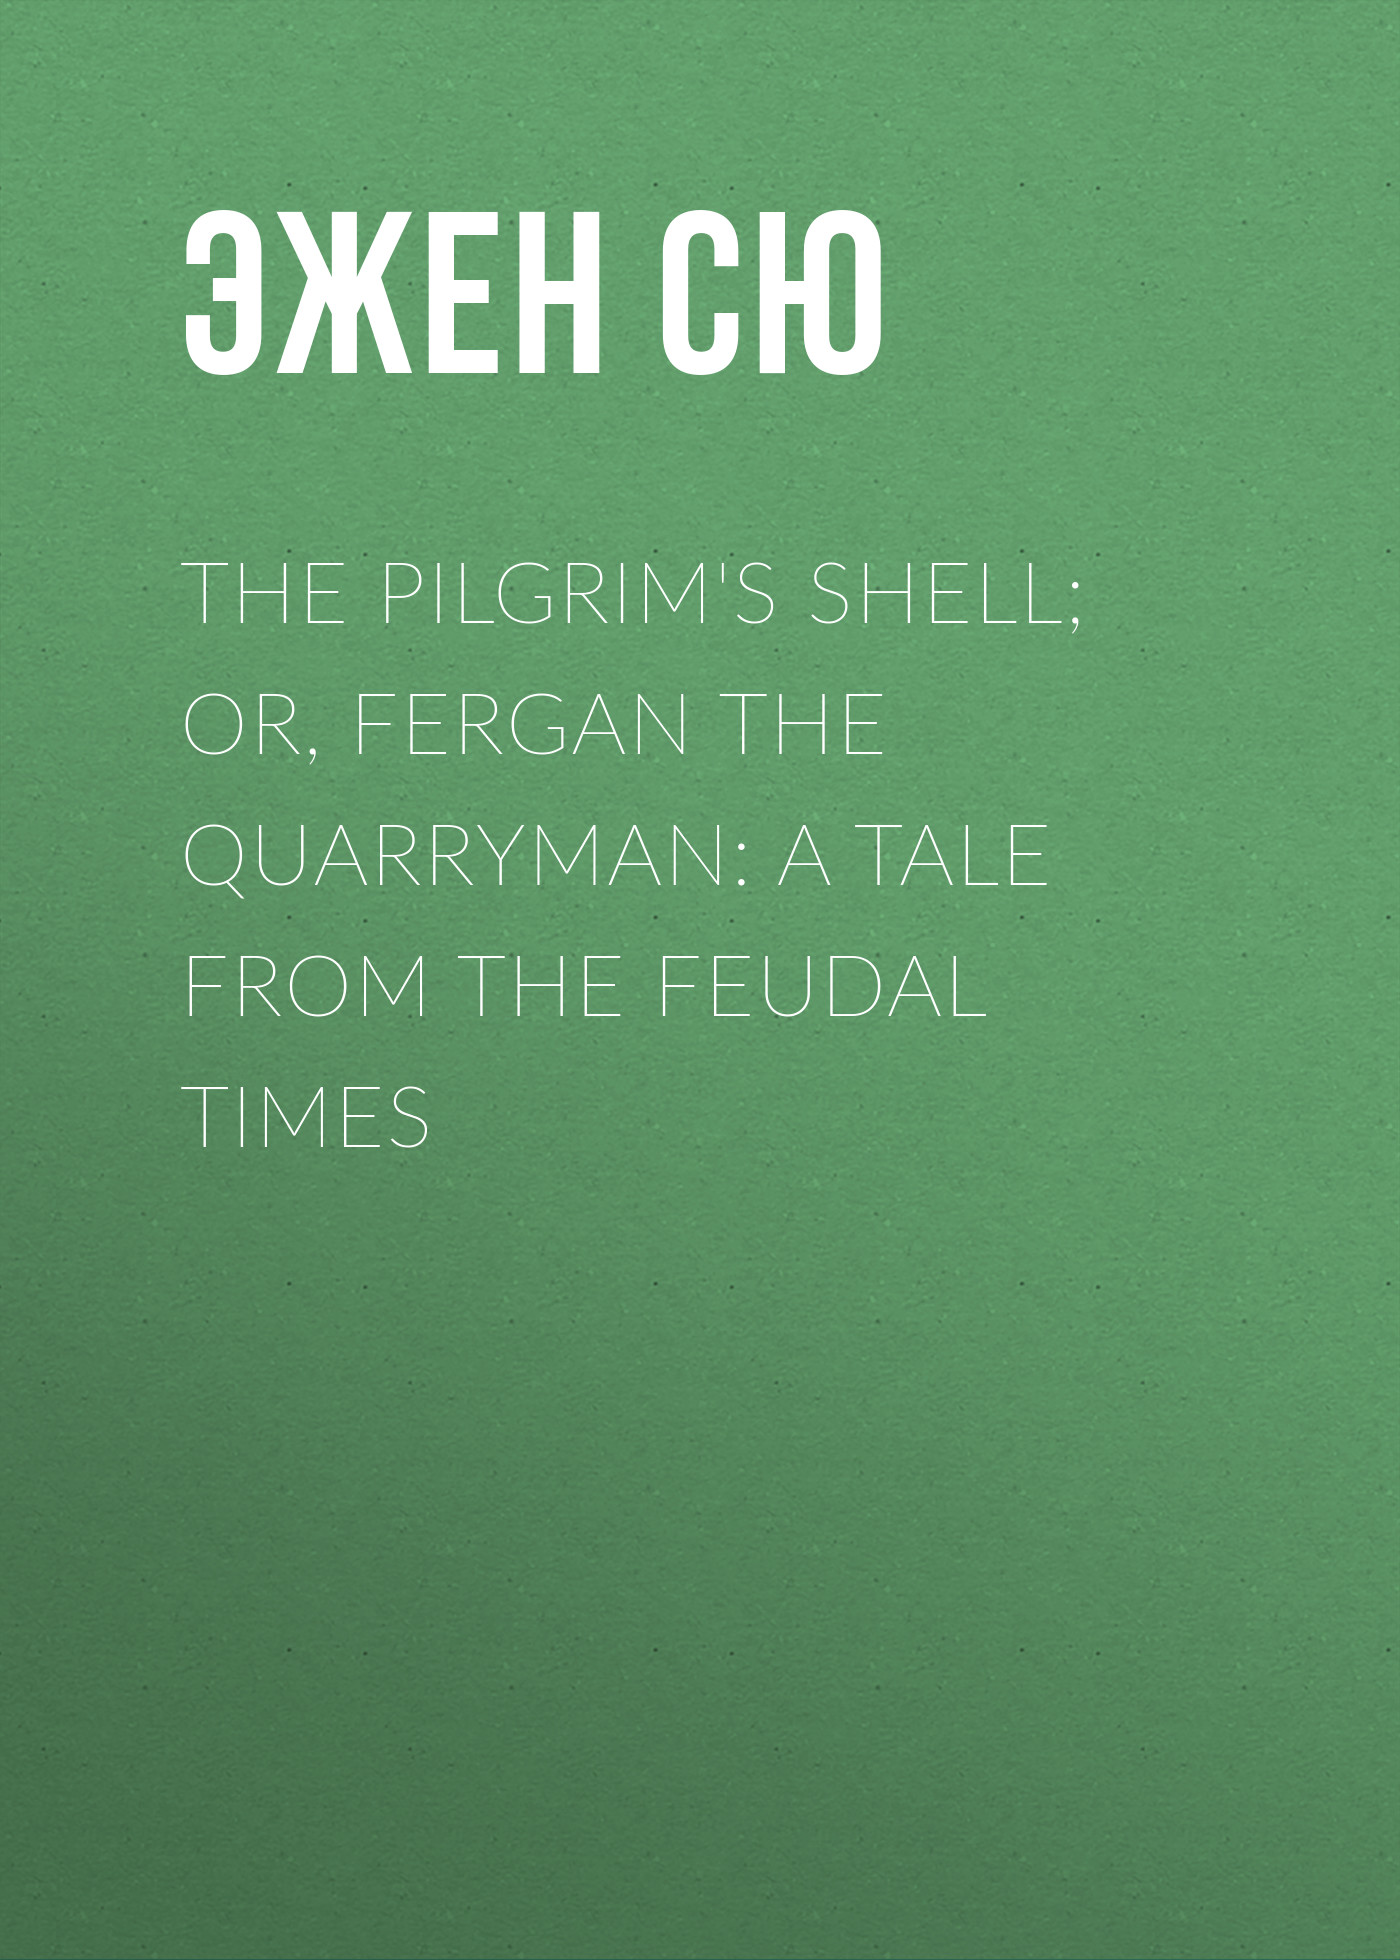 Фото - Эжен Сю The Pilgrim's Shell; Or, Fergan the Quarryman: A Tale from the Feudal Times эжен сю the gold sickle or hena the virgin of the isle of sen a tale of druid gaul